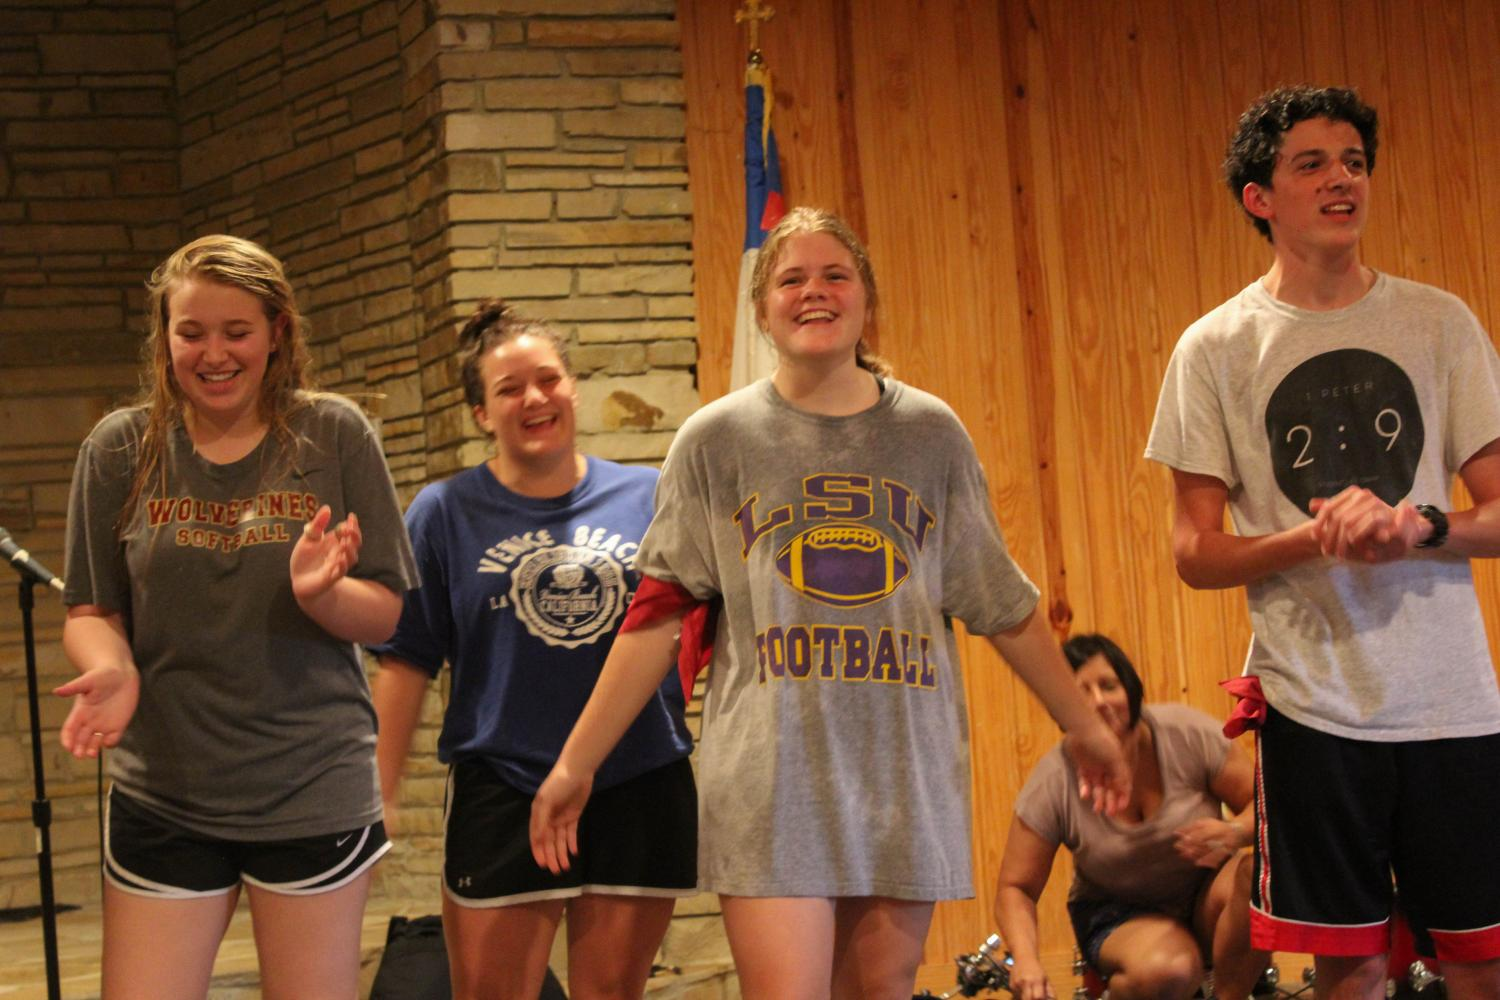 New student Braden Cowart (right) participates in Junior Senior Retreat with fellow Northlake students. Groups from the retreat created cheers and performed them for other groups.